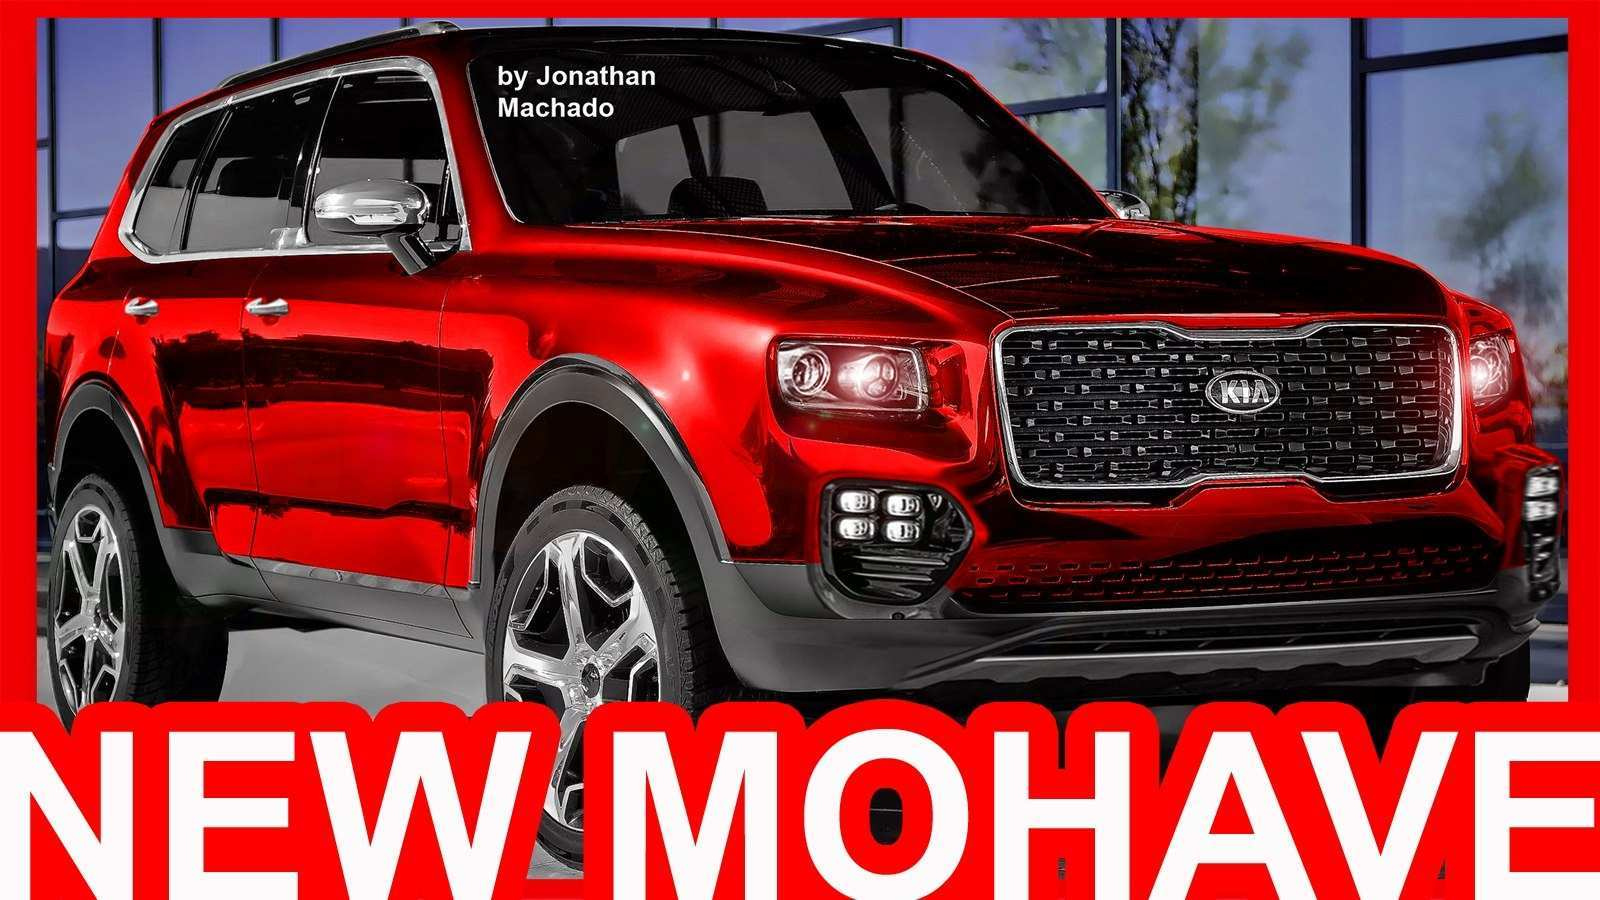 37 Great Kia Mohave 2020 Price Release with Kia Mohave 2020 Price